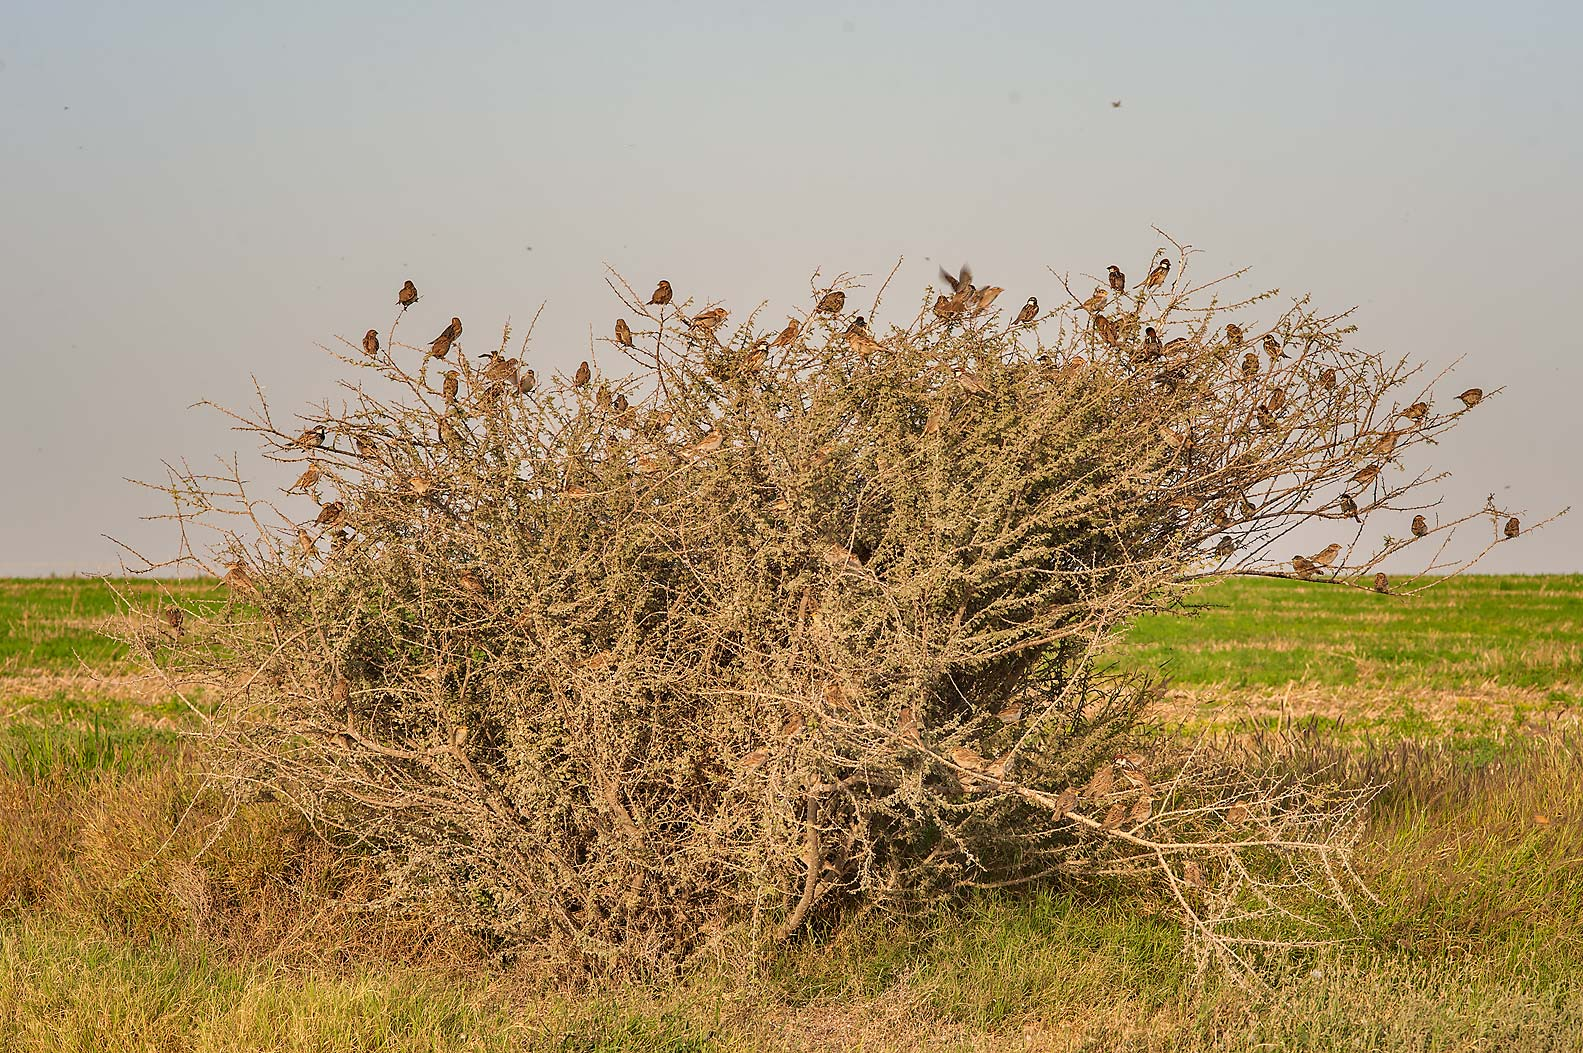 Large flock of sparrows sitting on a bush near...in Irkhaya Farms. South-western Qatar